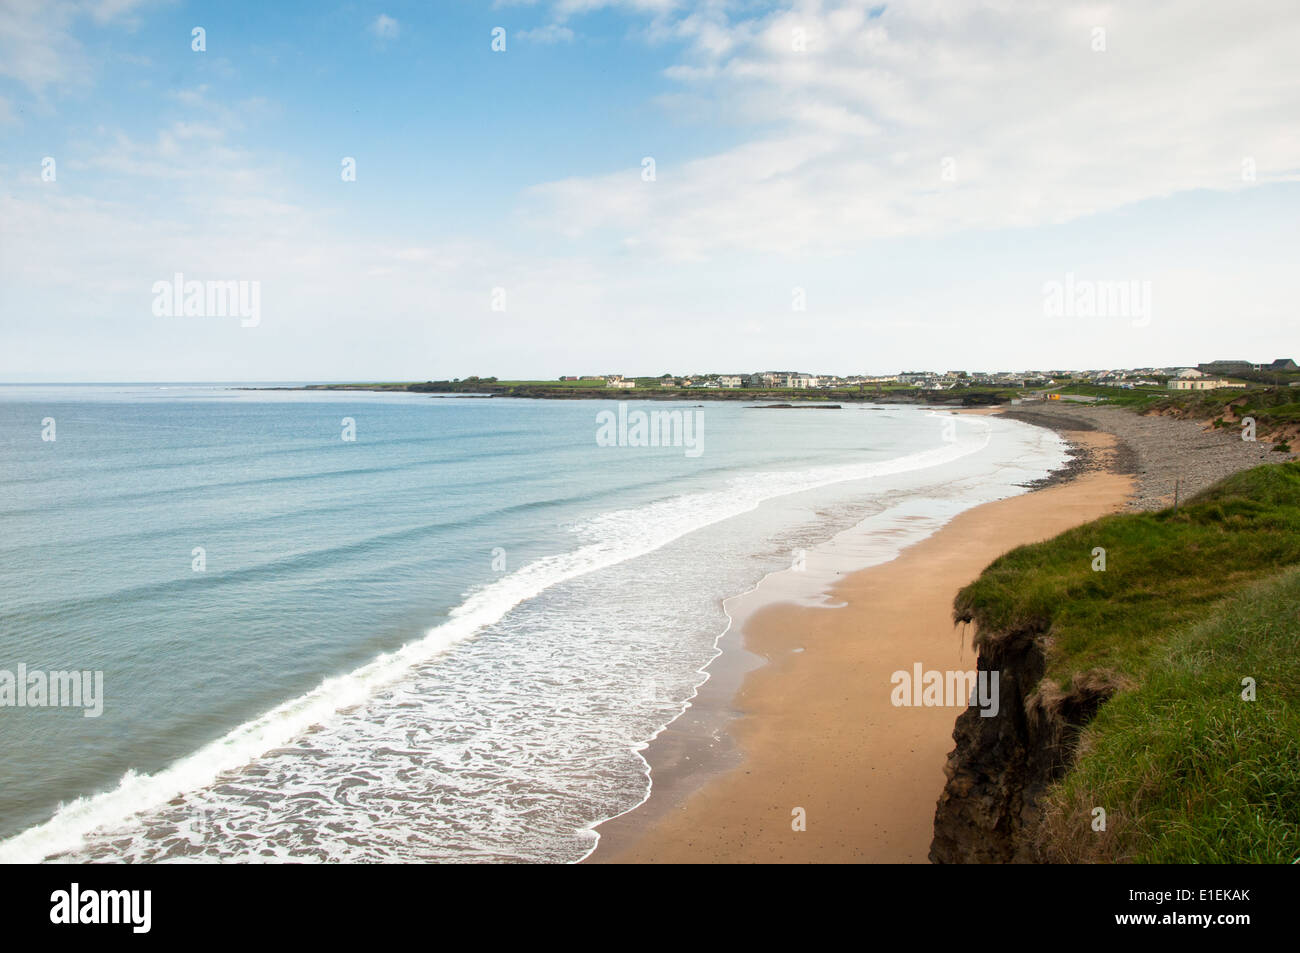 Beach at Spanish Point County Clare on West Coast of Ireland on a Calm, Sunny Morning - Stock Image